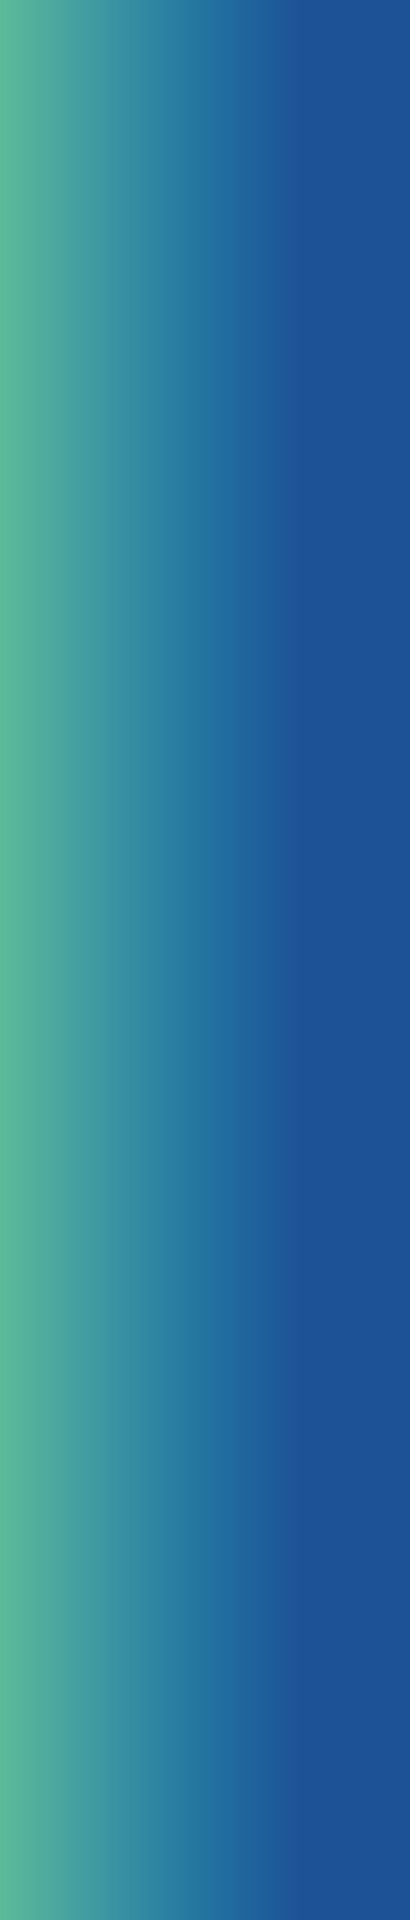 gradient block 2.png